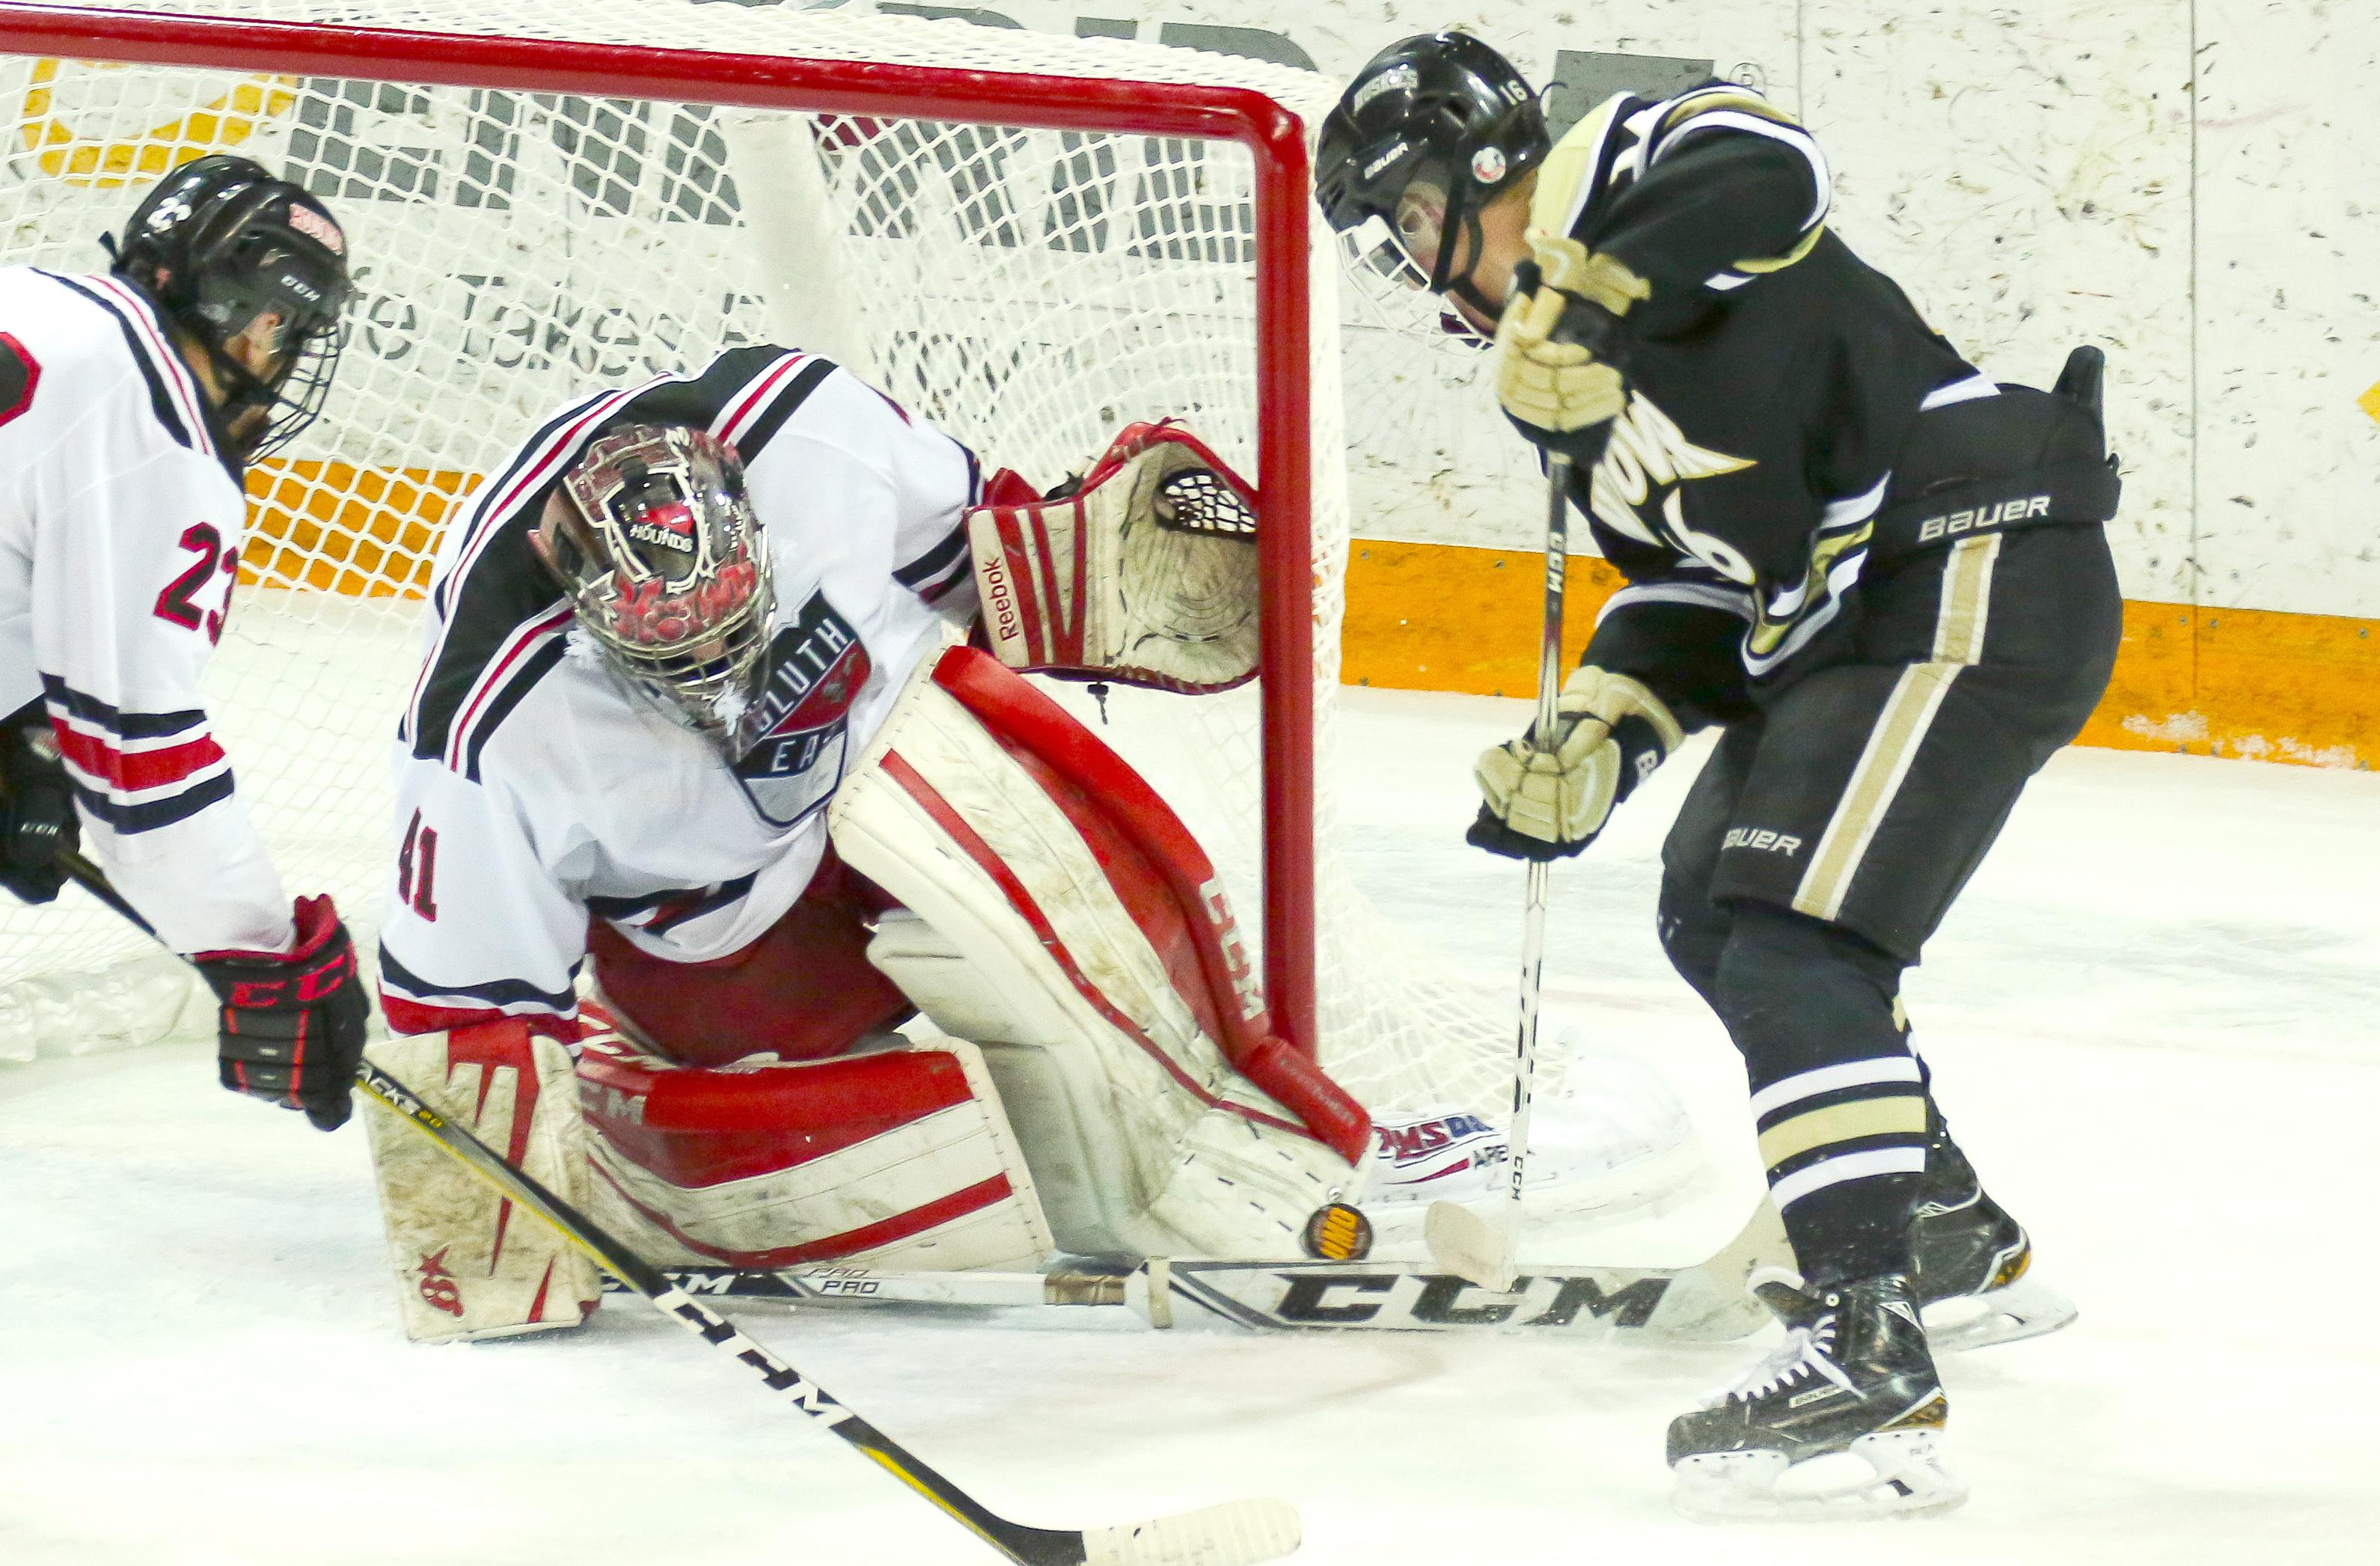 Duluth East goaltender Parker Kleive stops a shot by Andover's Holden Dunleavy during Thursday's Class 2A, Section 7 championship game at AMSOIL Arena. The 'Hounds defeated the Huskies 3-2 in overtime. Photo by Dave Harwig, Viewthroughmylens.net